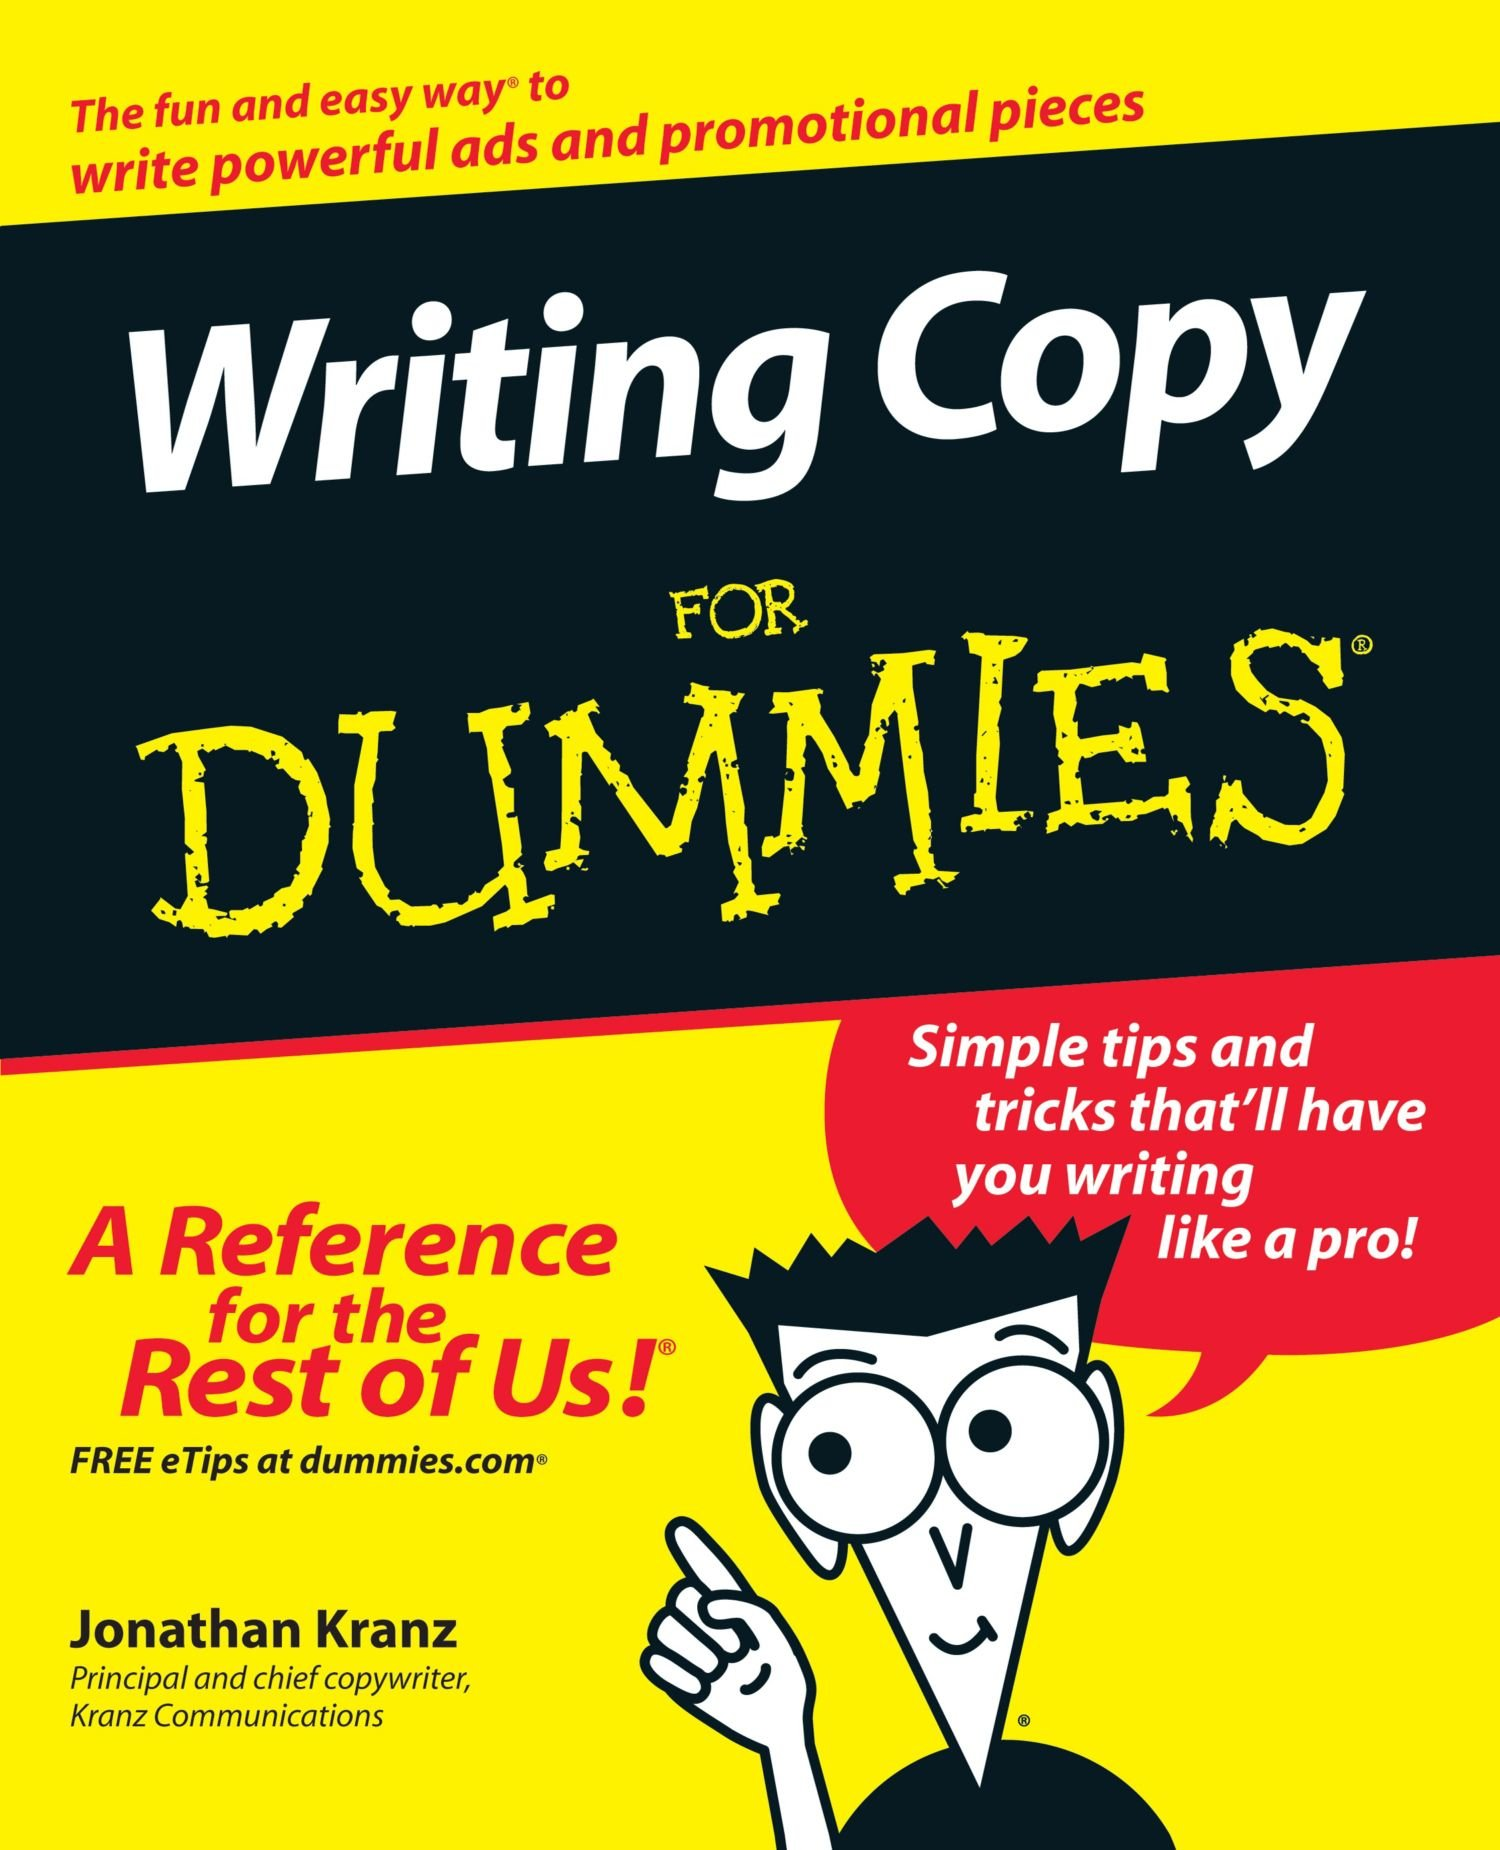 writing copy for dummies co uk jonathan kranz writing copy for dummies co uk jonathan kranz 9780764569692 books